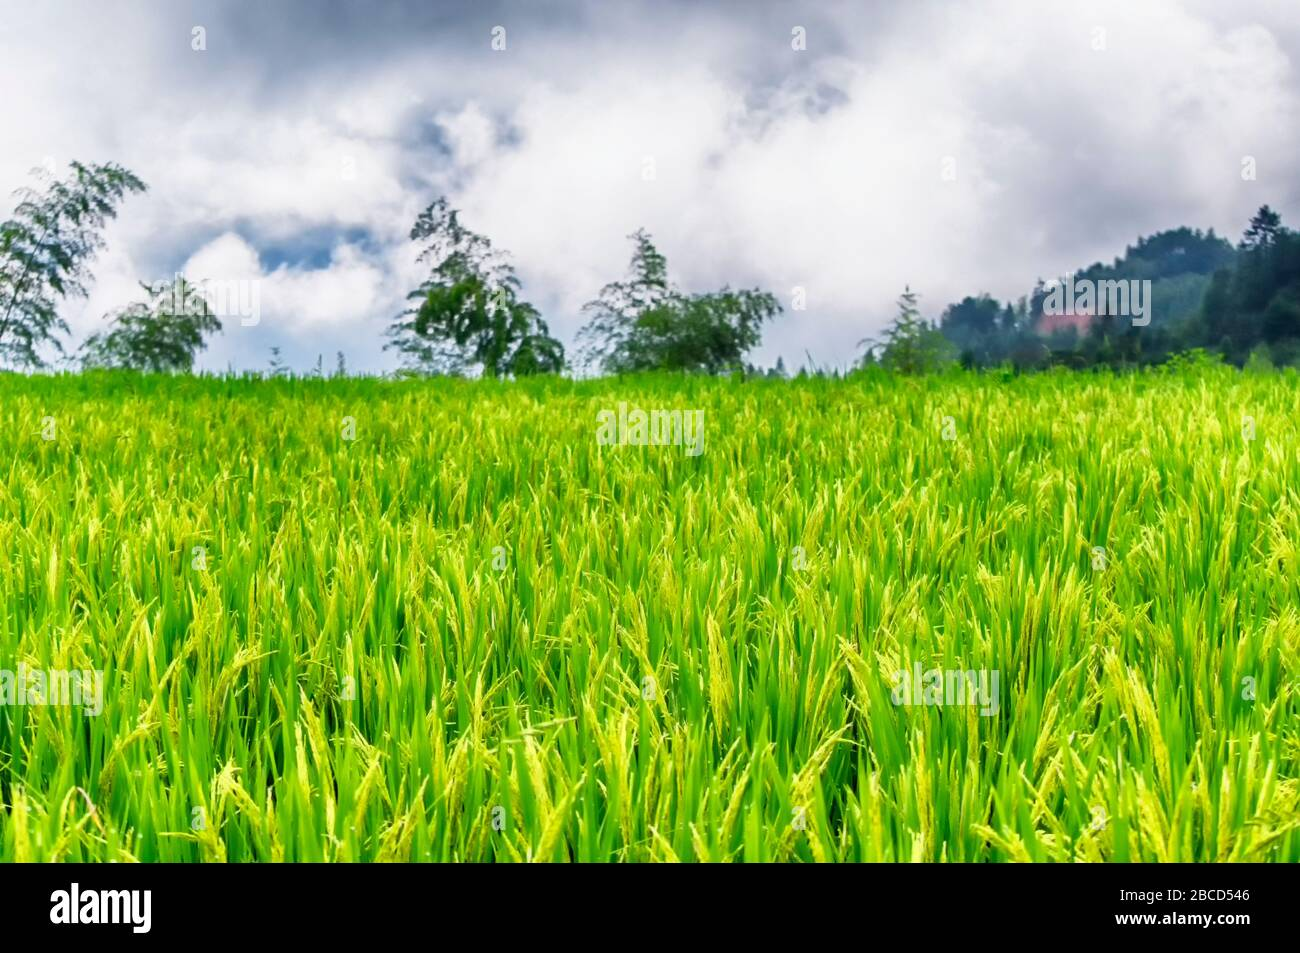 a field of growing rice in yunhe county rice terraces on a cloudy day in Zhejiang province China. Stock Photo